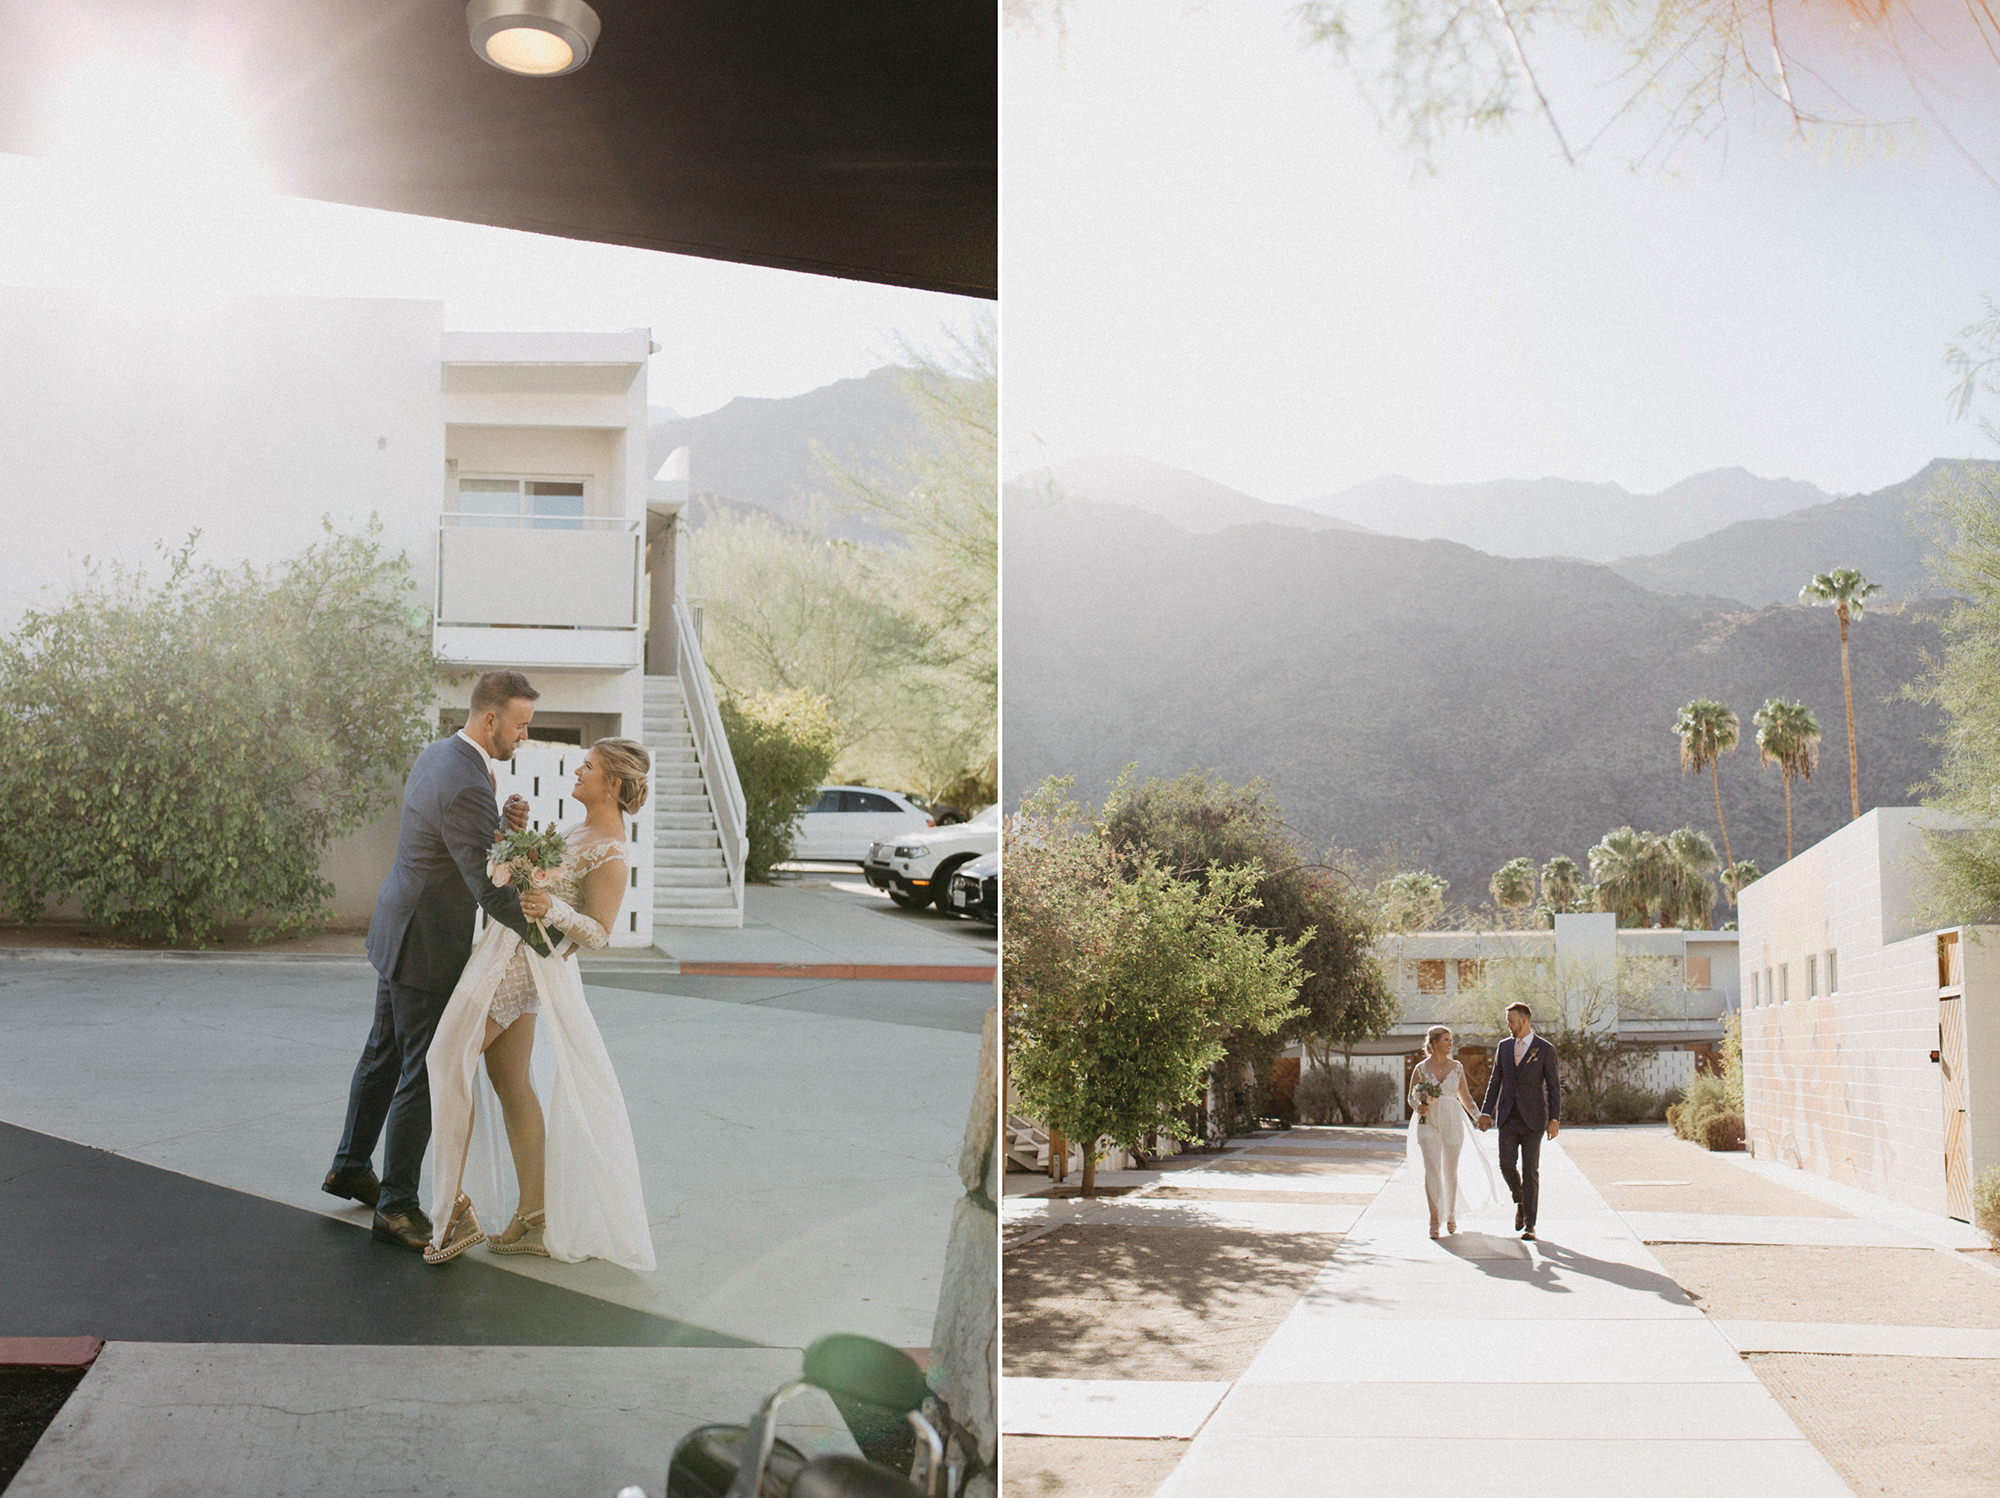 ace_hotel_palm_springs_wedding-55.jpg